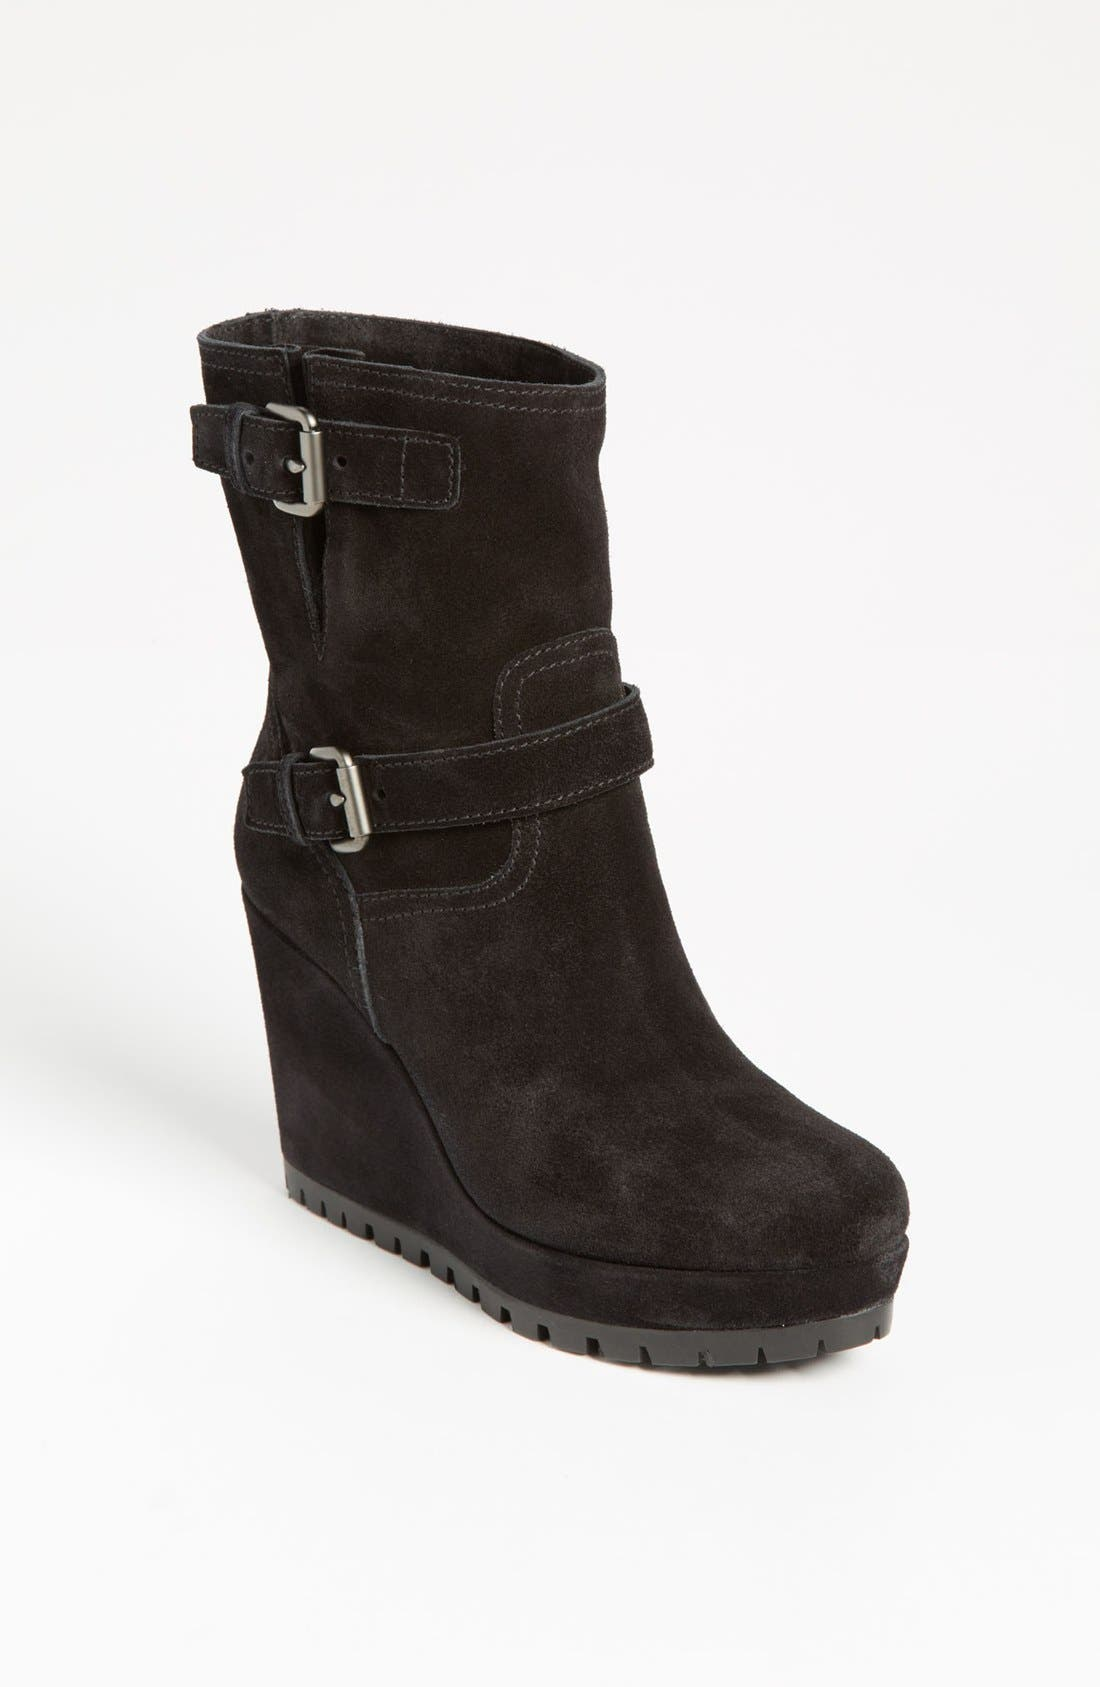 prada wedge boot nordstrom